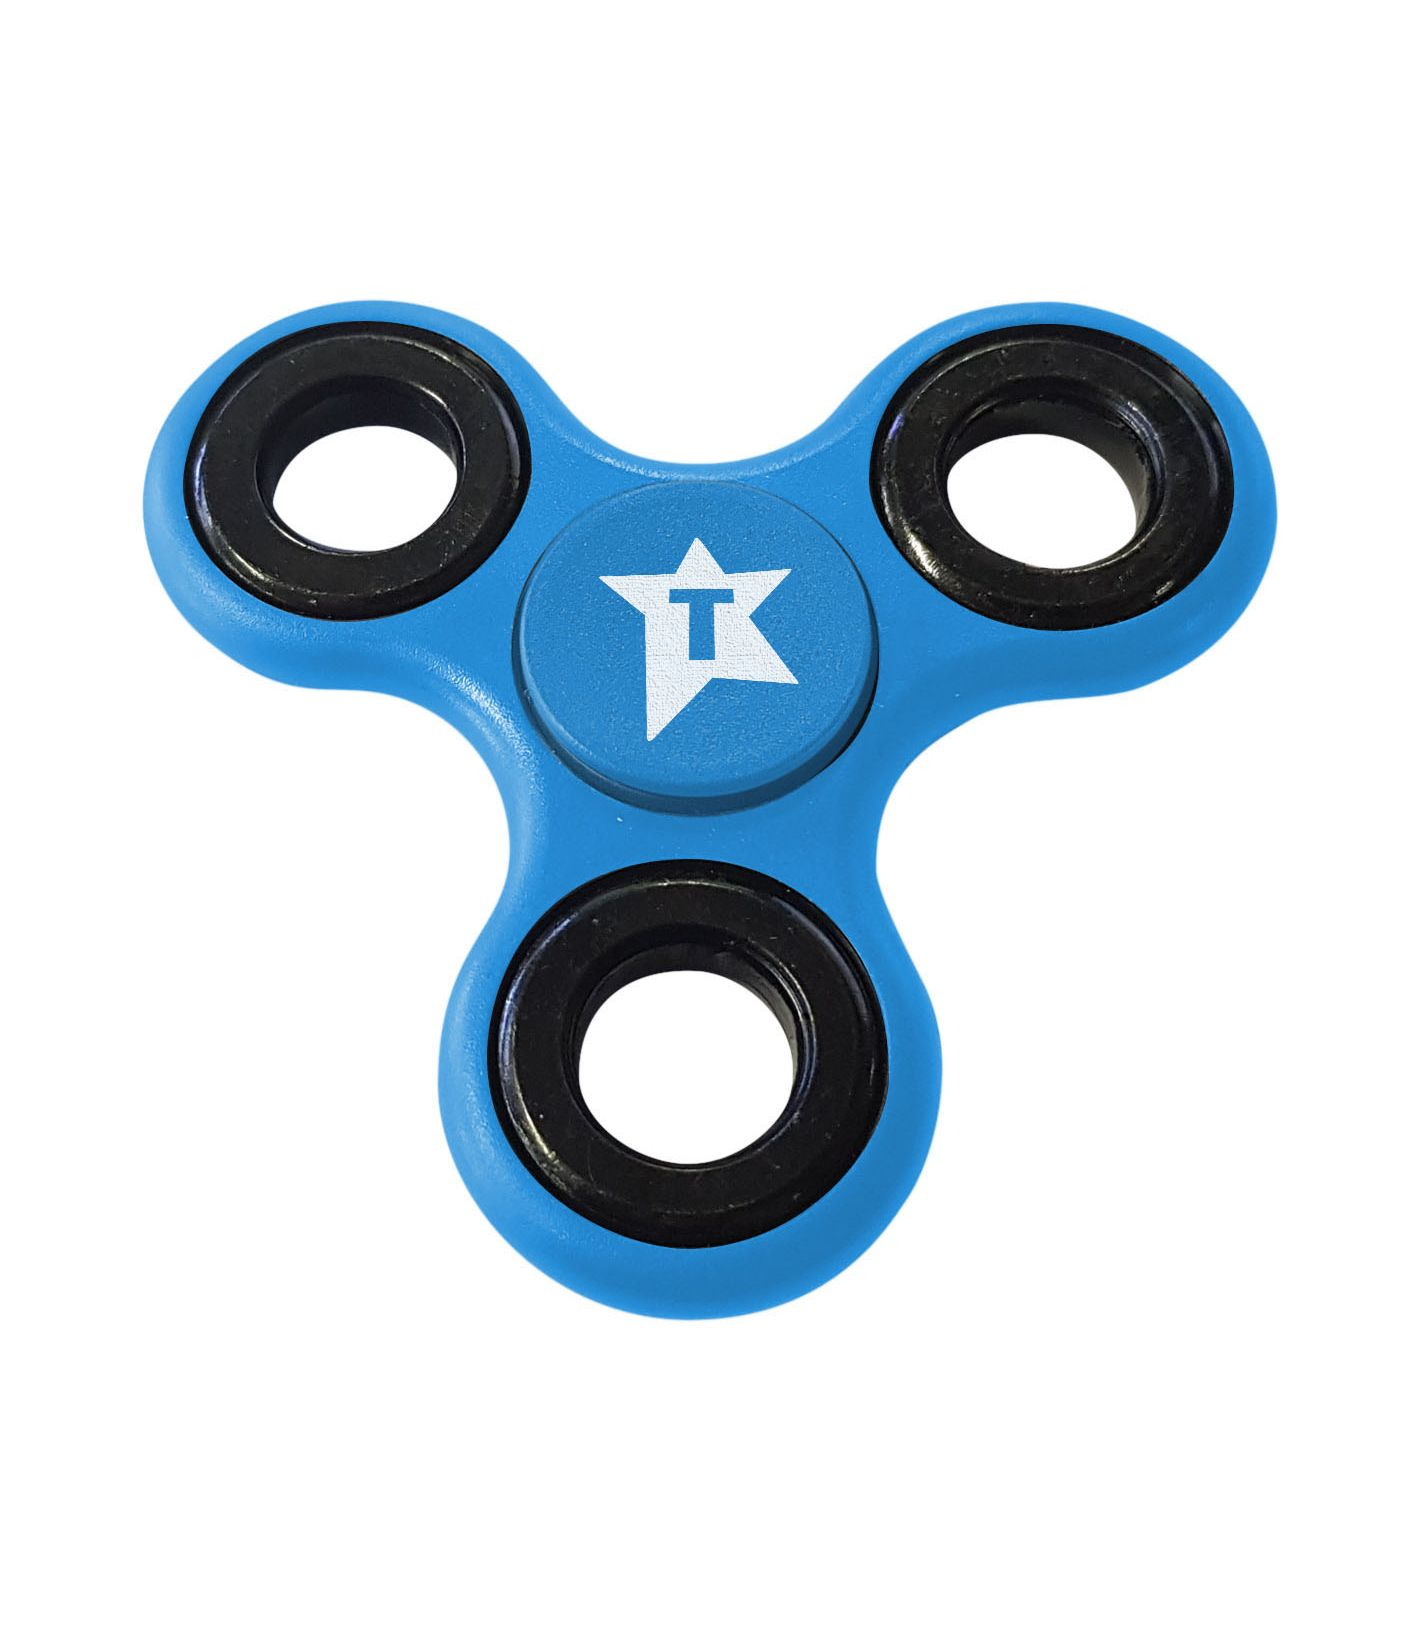 Promotional Product Economy Spinner